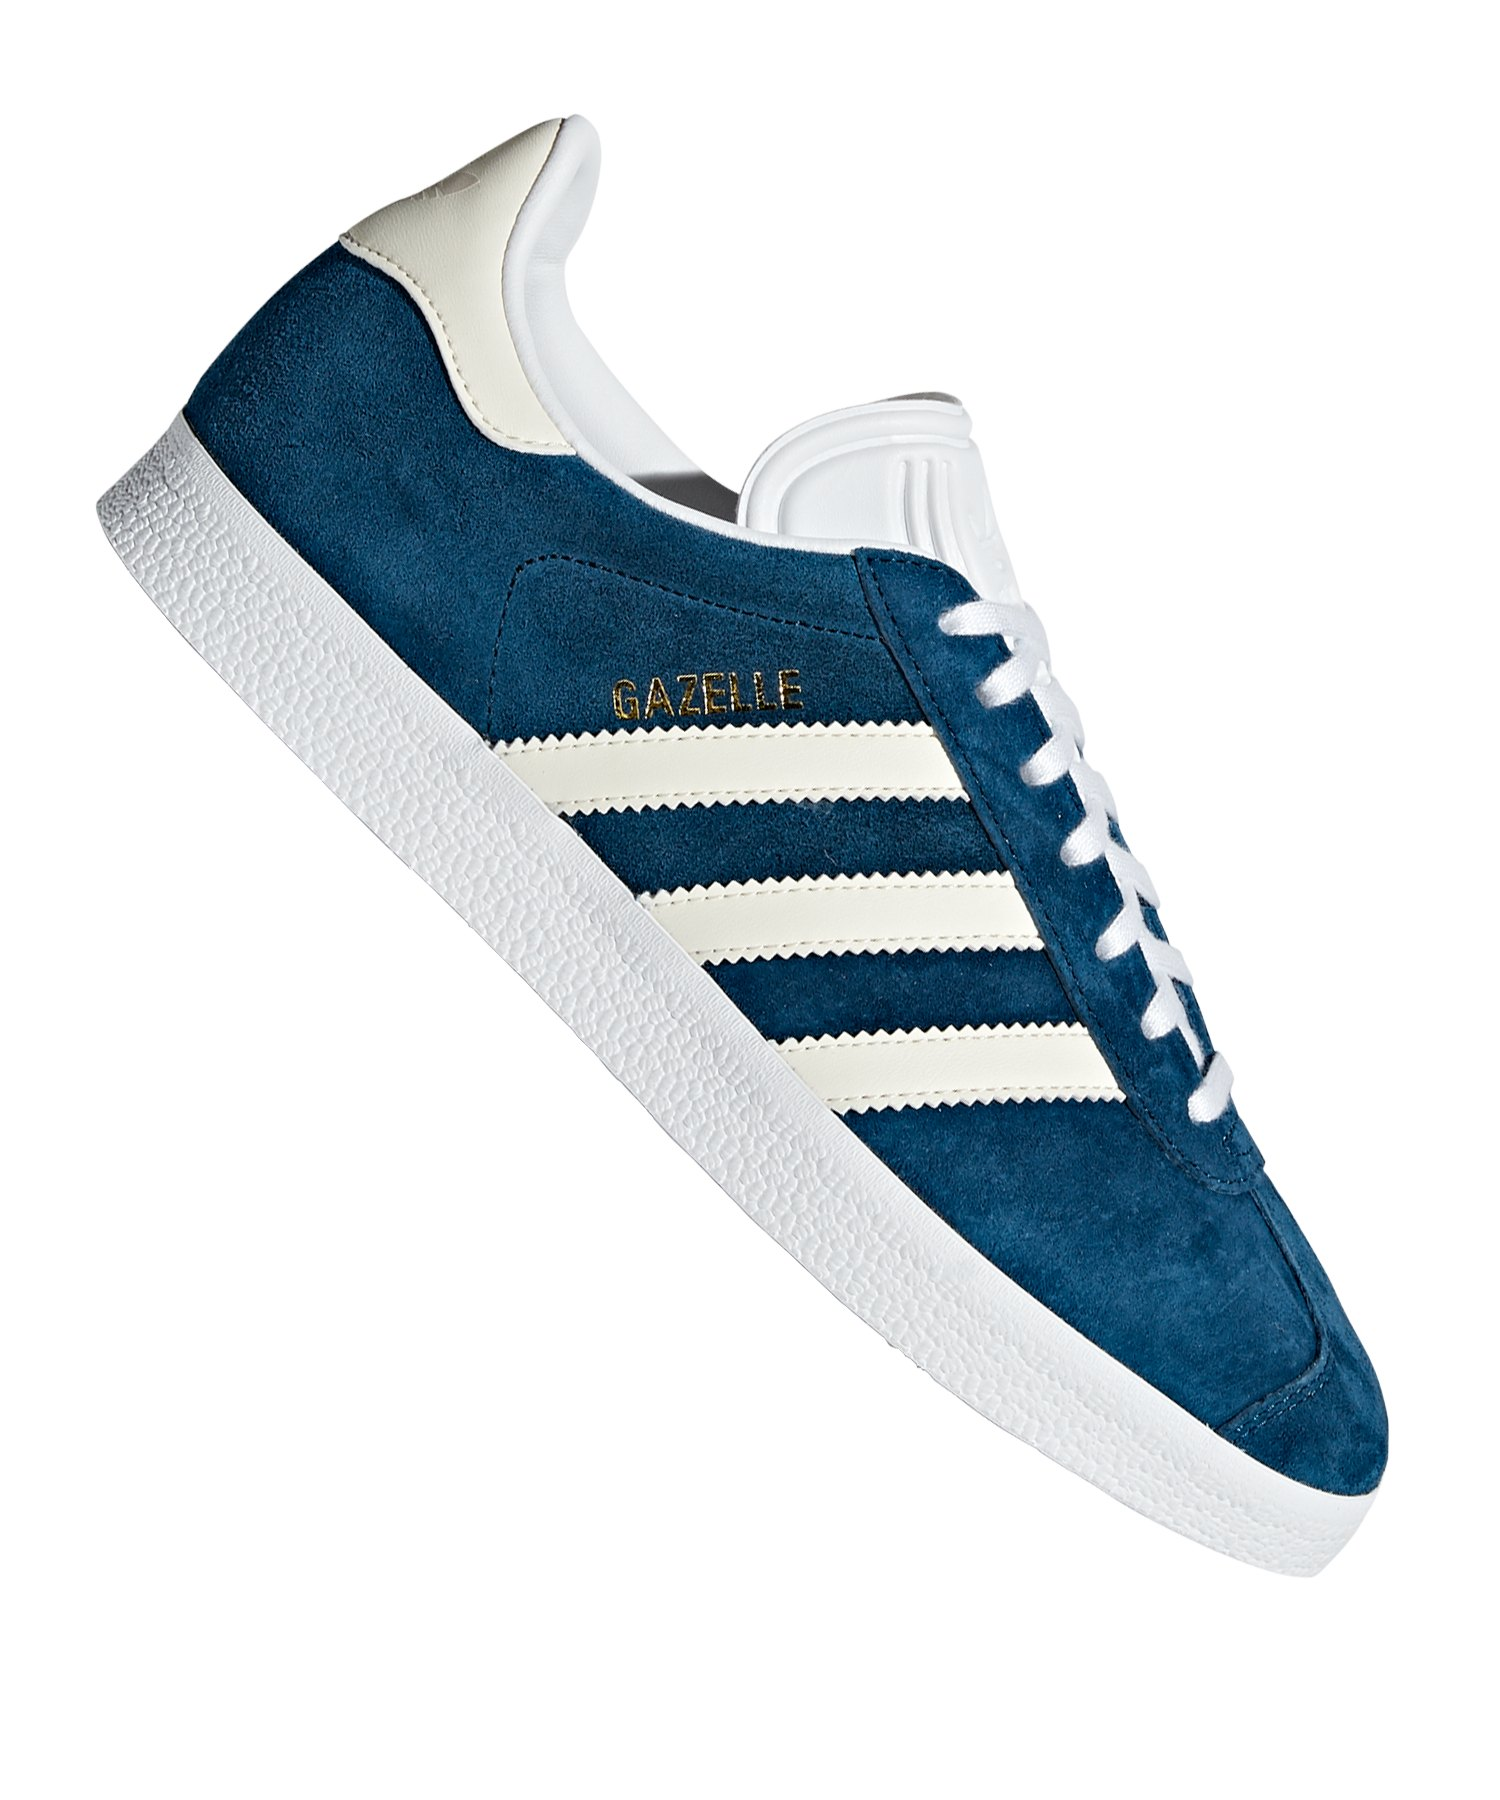 adidas Originals Gazelle Sneaker Damen Blau Weiss